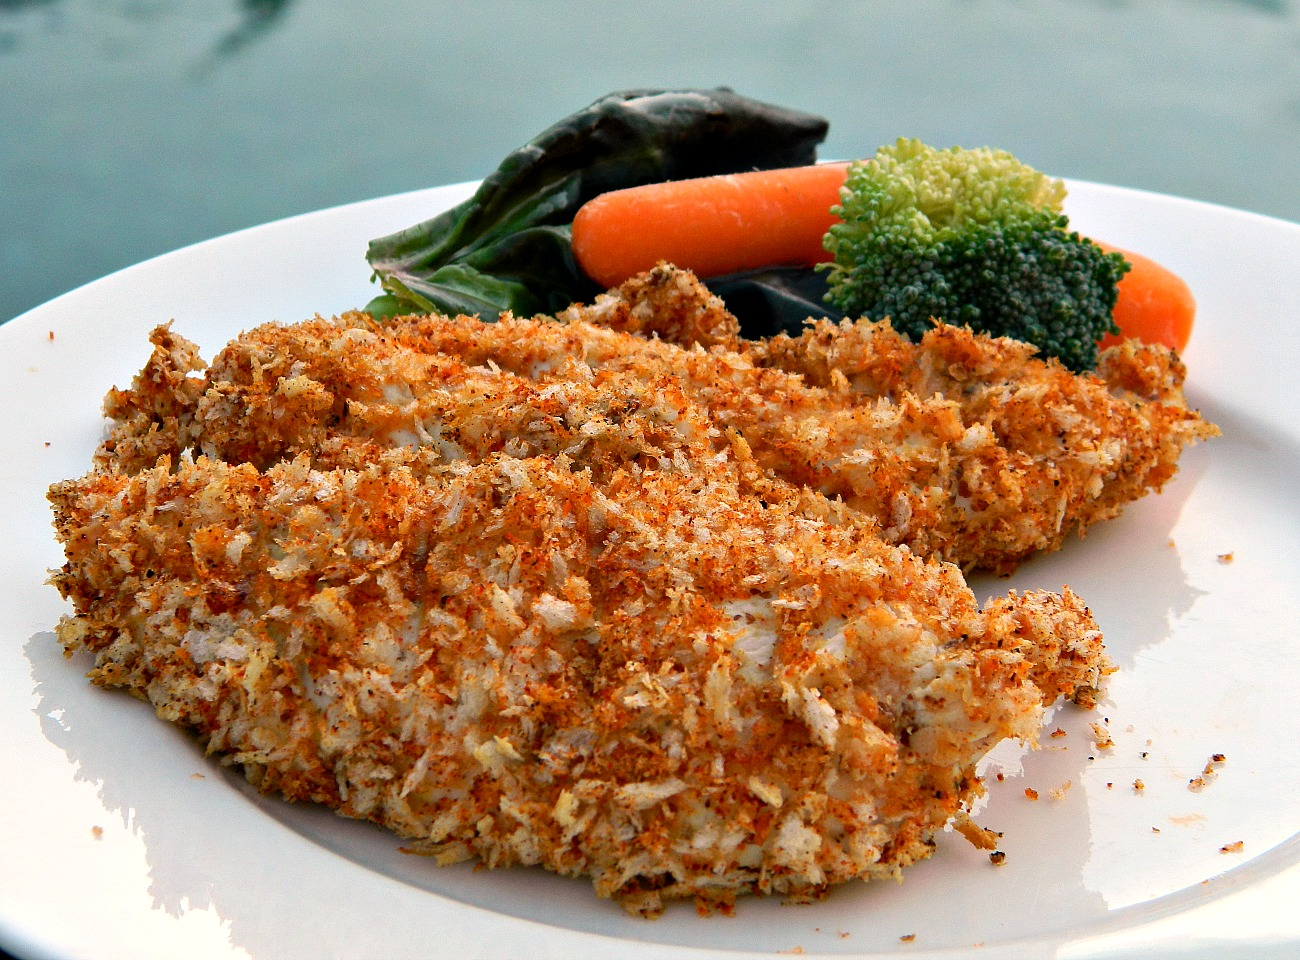 Baked Chicken Strips with Dijon and Panko Coating